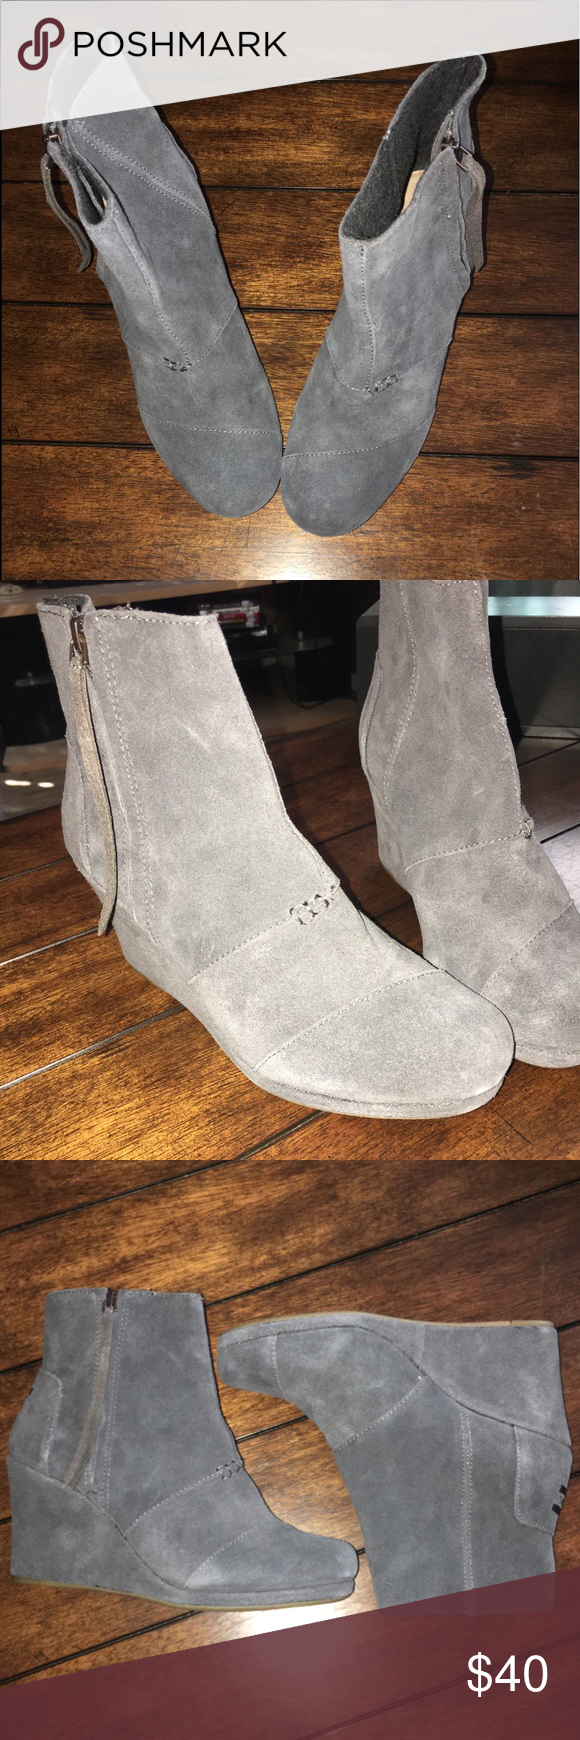 Toms wedged Women's booties Toms wedged Women's booties  Gray suede material with a cute wedge in classic Toms design.  Size: 9.5 W  New without tags Toms Shoes Ankle Boots & Booties #tomwedges Toms wedged Women's booties Toms wedged Women's booties  Gray suede material with a cute wedge in classic Toms design.  Size: 9.5 W  New without tags Toms Shoes Ankle Boots & Booties #tomwedges